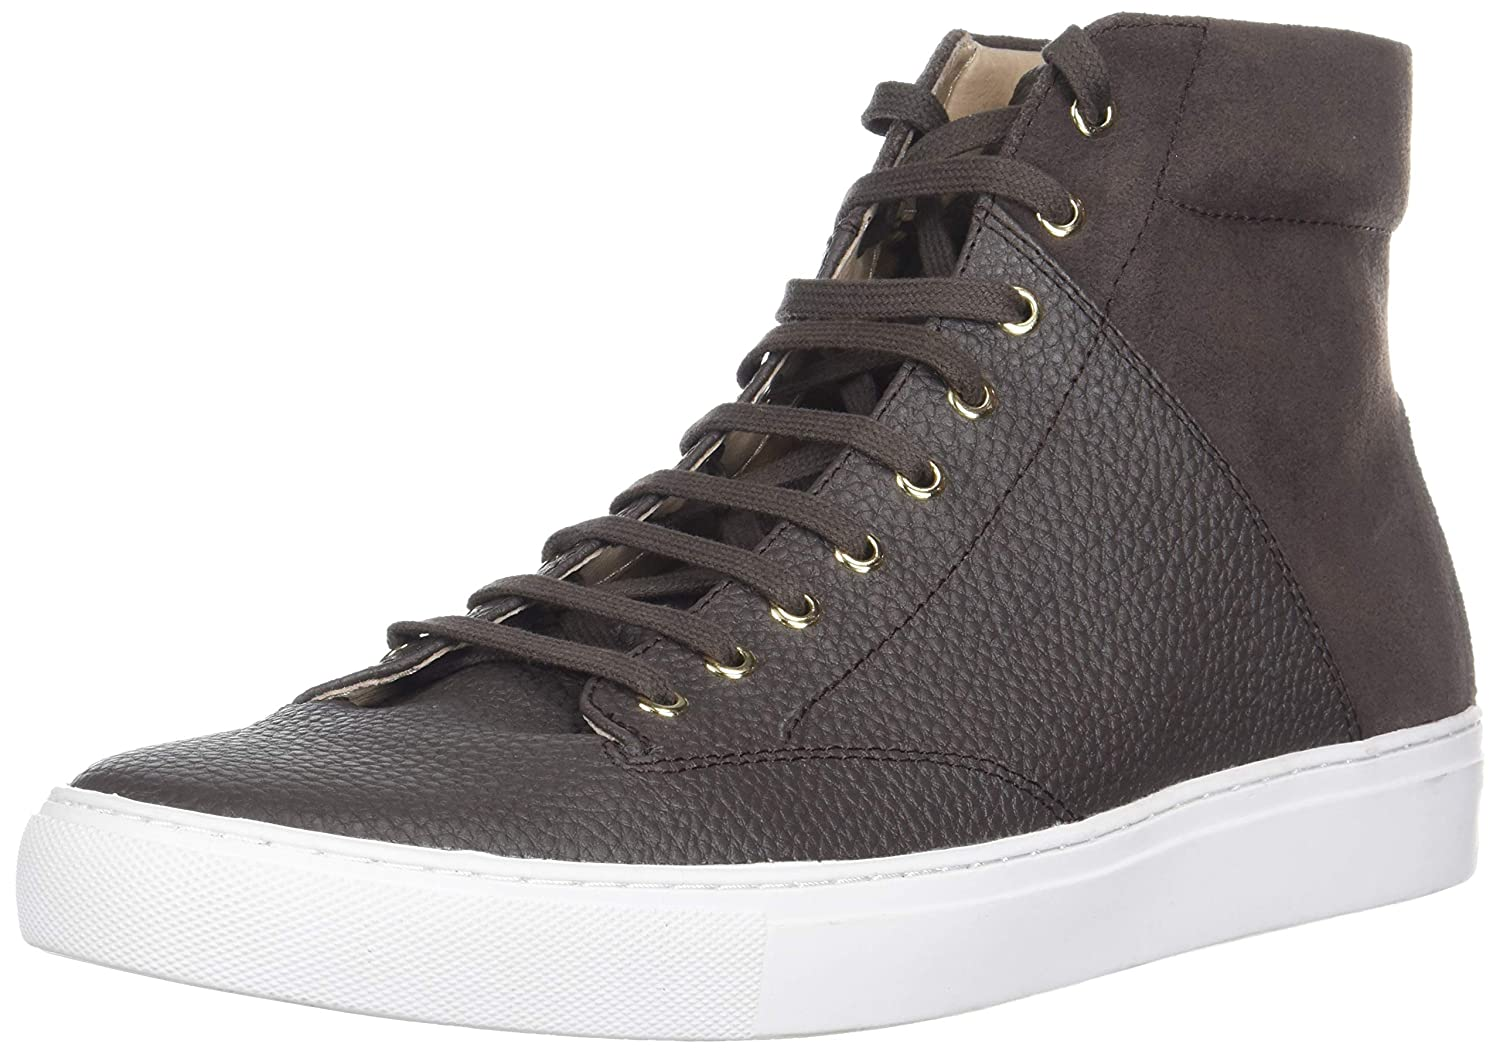 Dark Earth TCG Mens Men's Premium shoes Porter All Leather High Top Laces Sneaker Sneaker